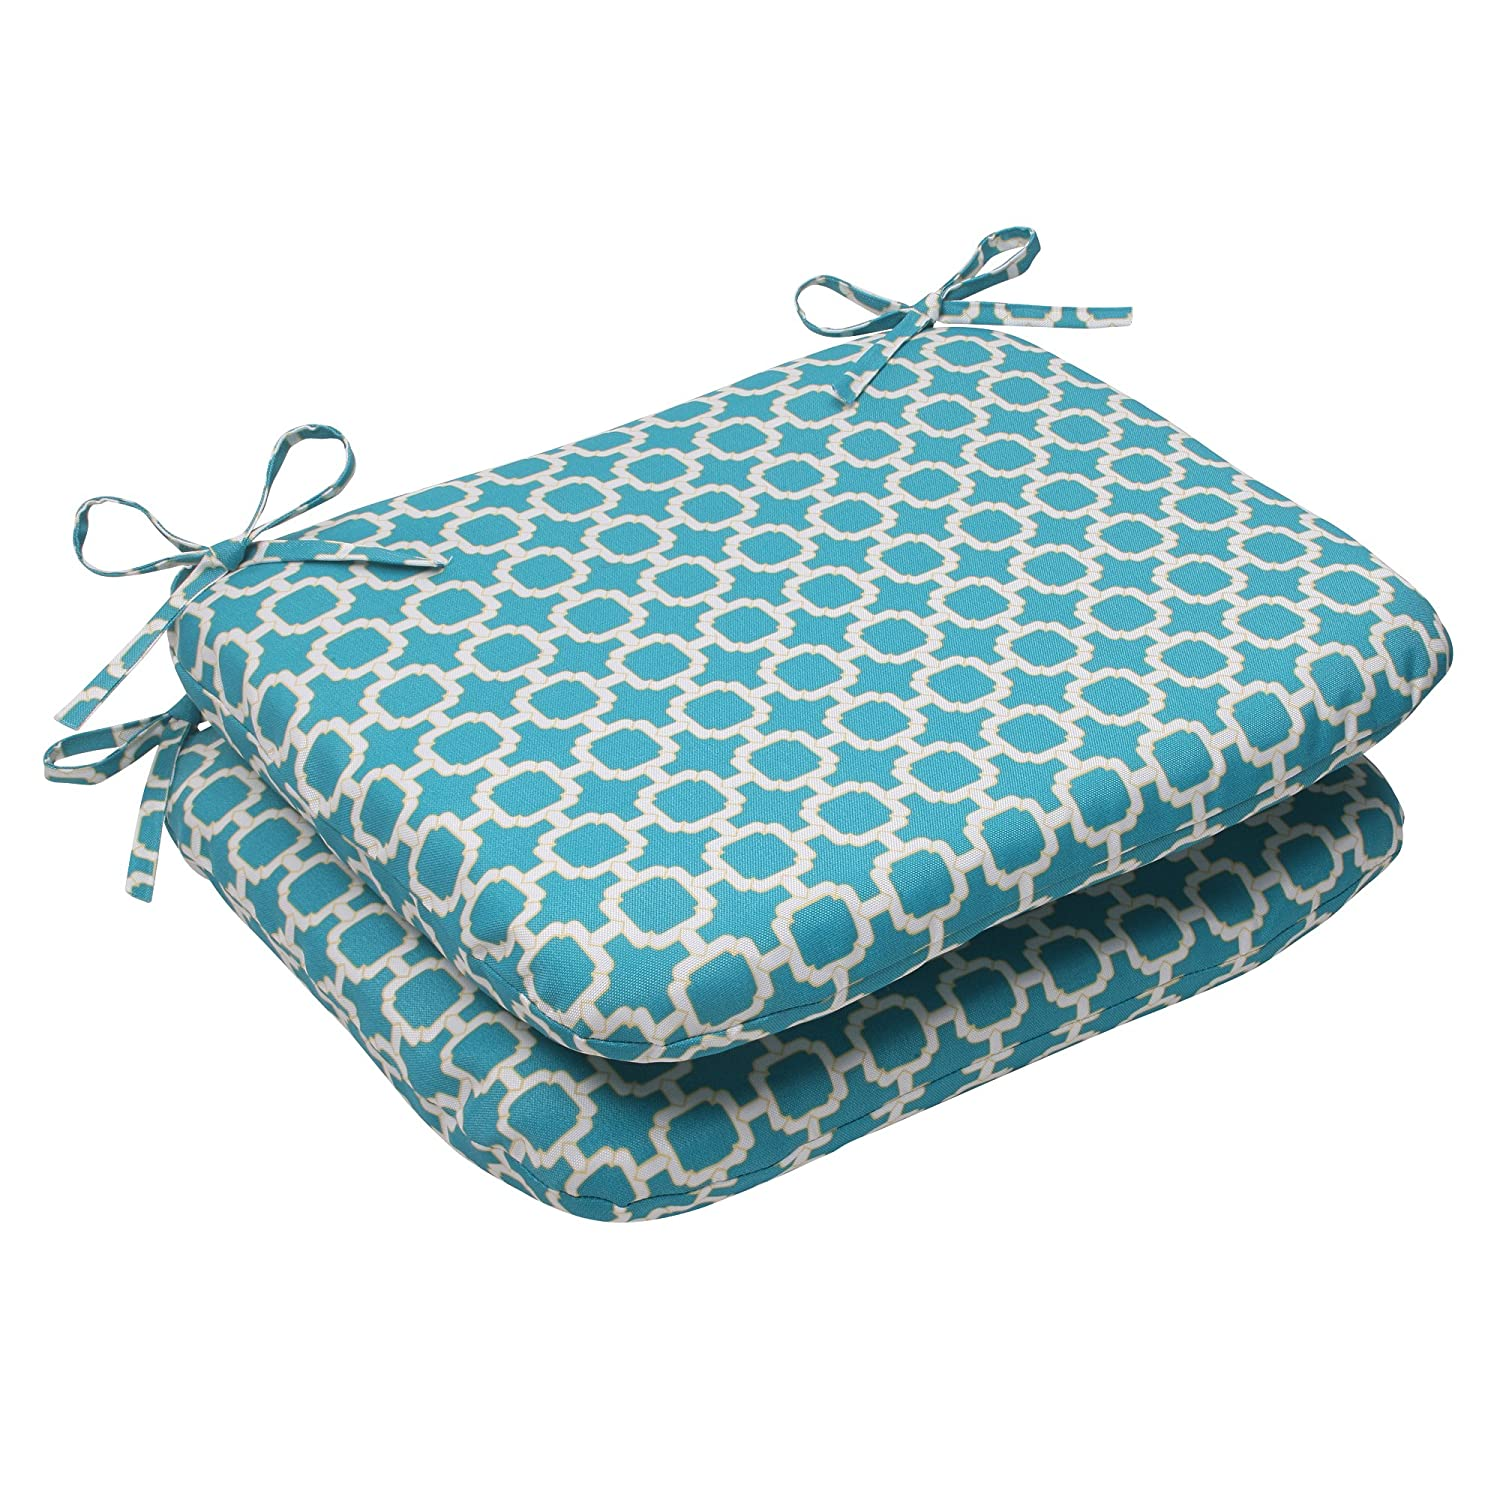 Pillow Perfect Outdoor Hockley Rounded Seat Cushion, Teal, Set of 2